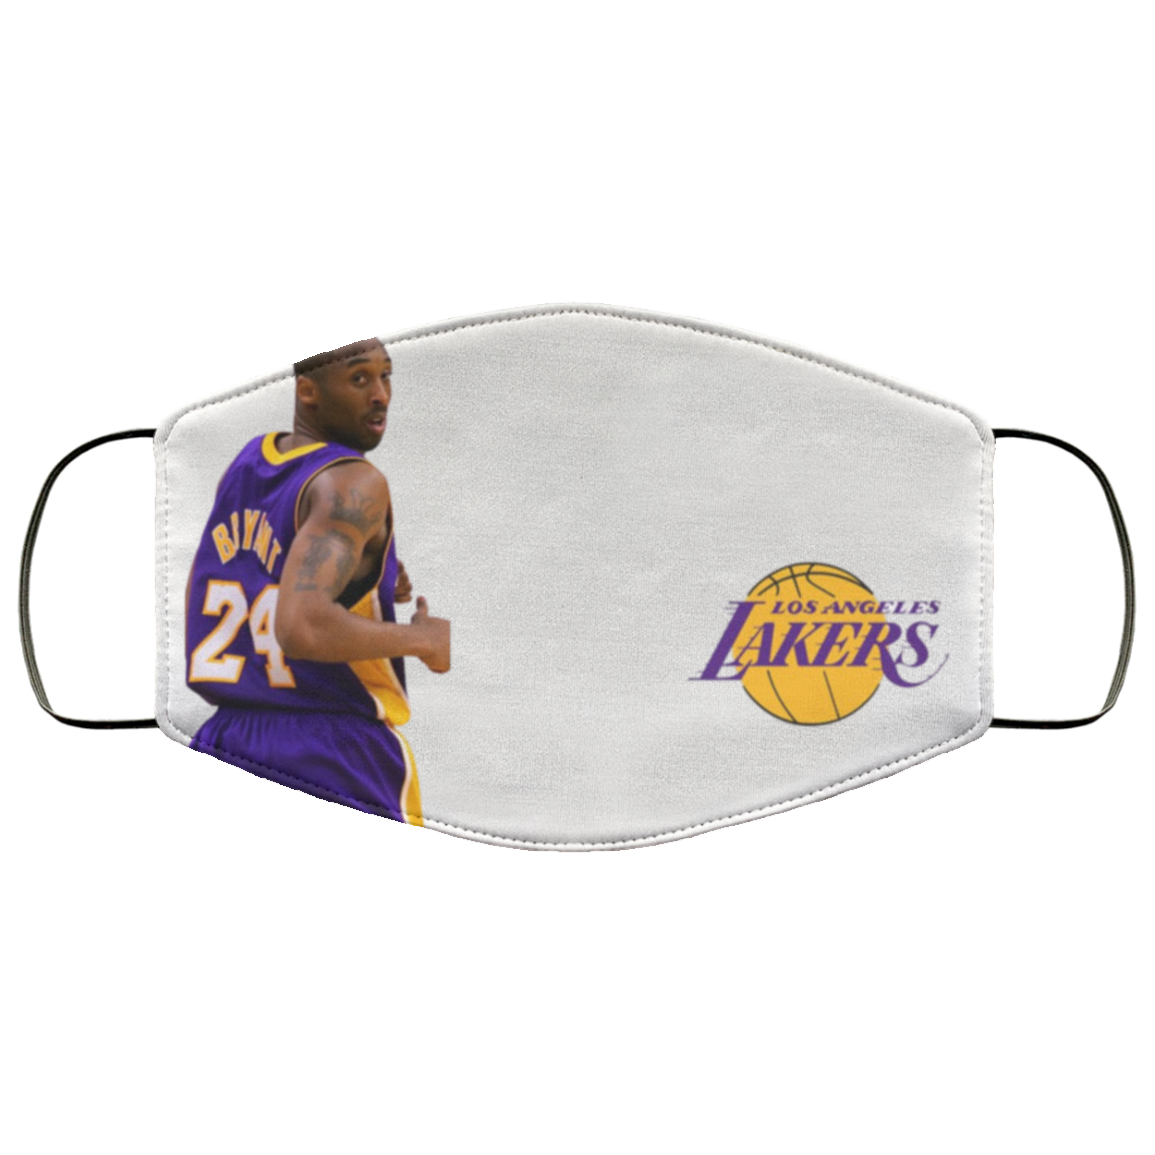 Lakers Face Mask - OMG I Really Want That